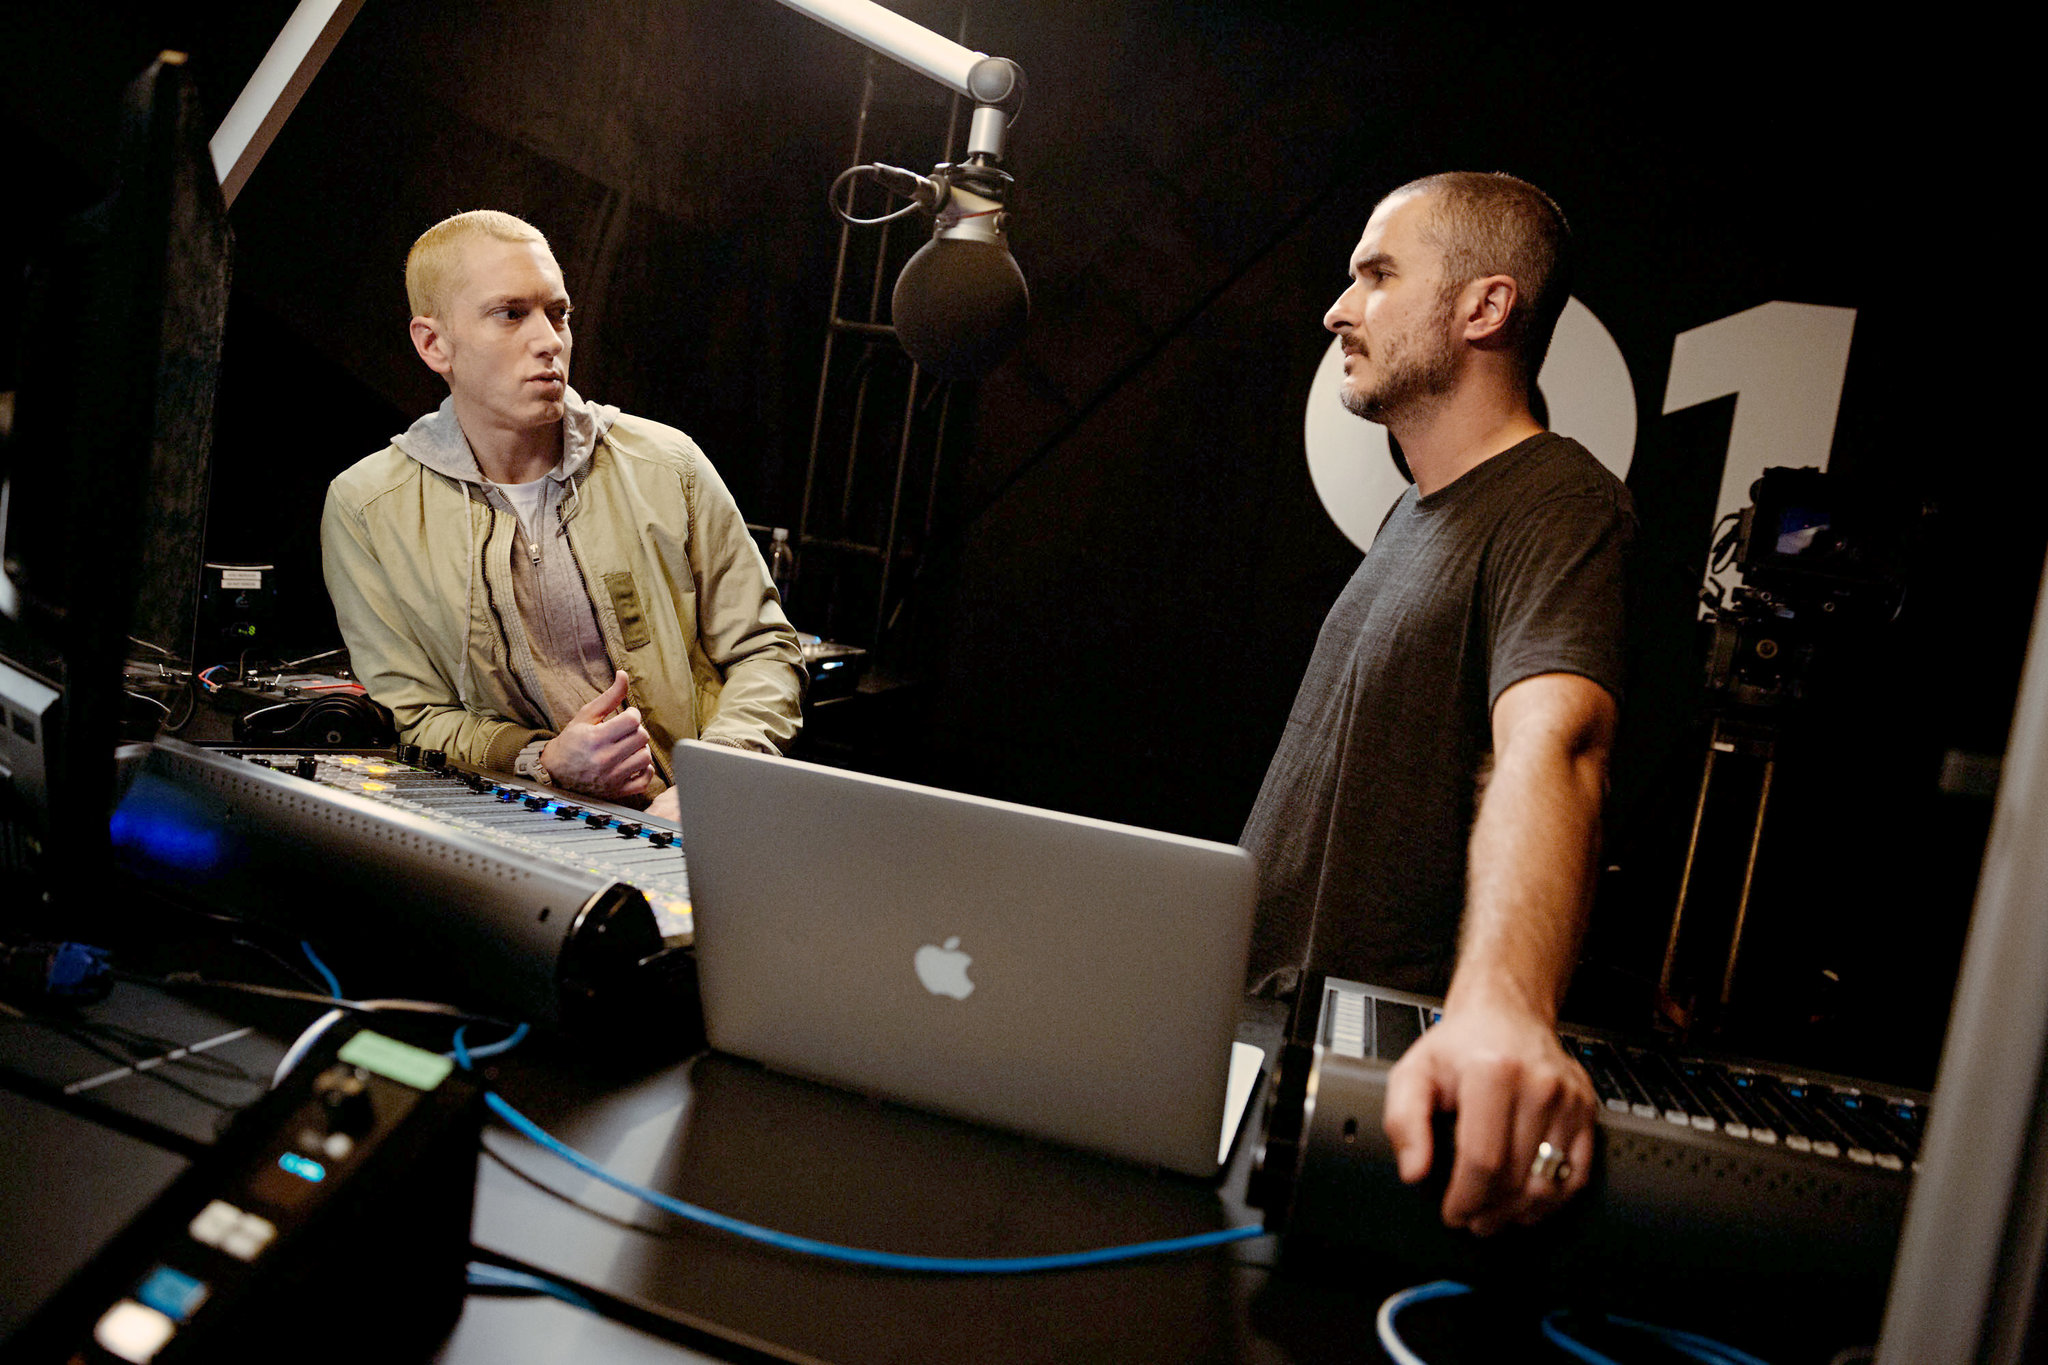 2015.06.26 - Eminem, left, with Mr. Lowe. Credit Jeremy Deputat